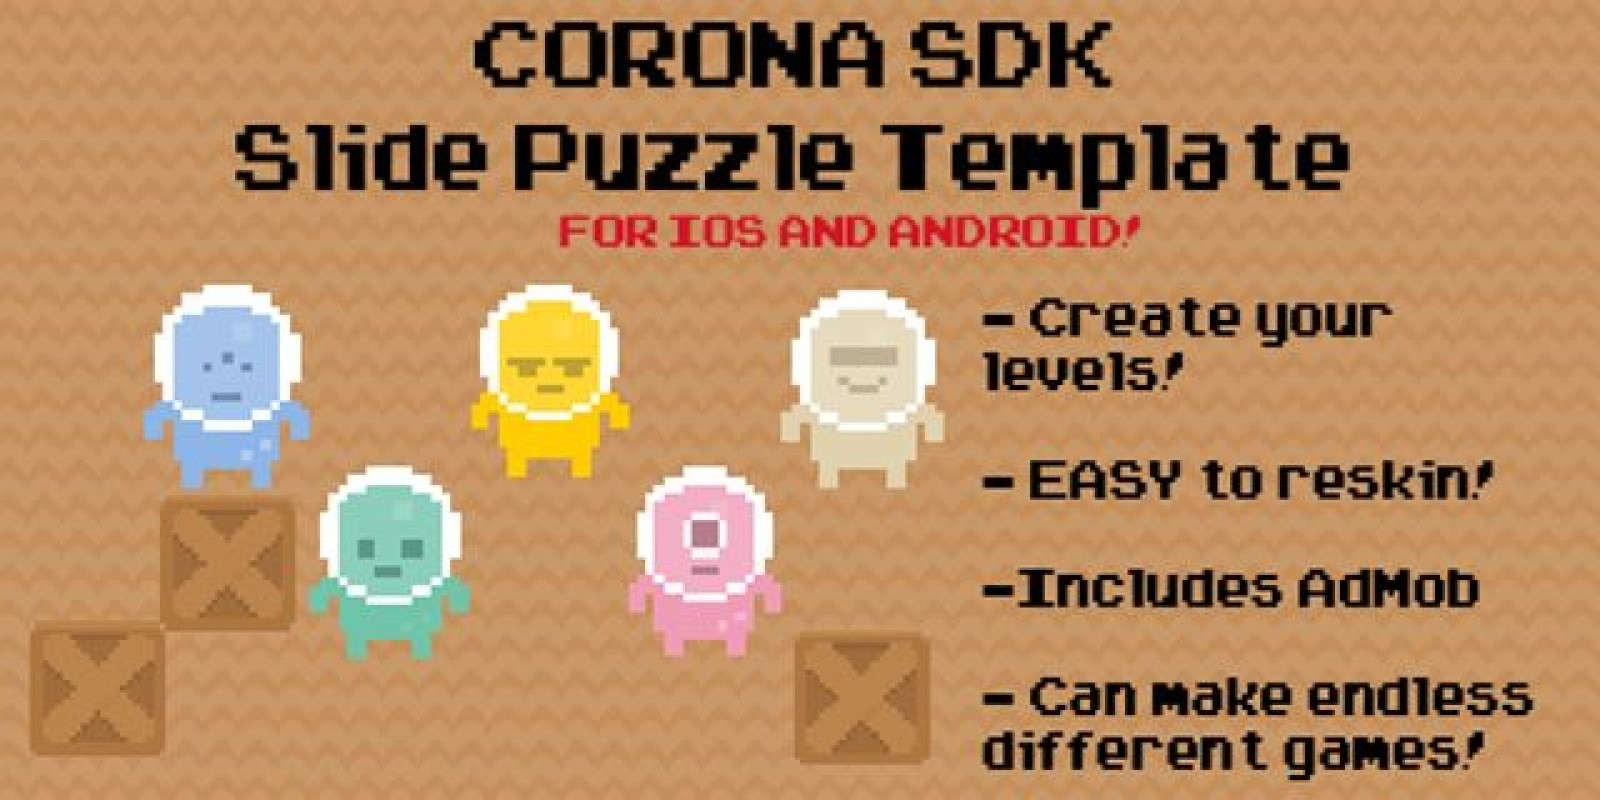 Slide Puzzle Corona App Template with AdMob